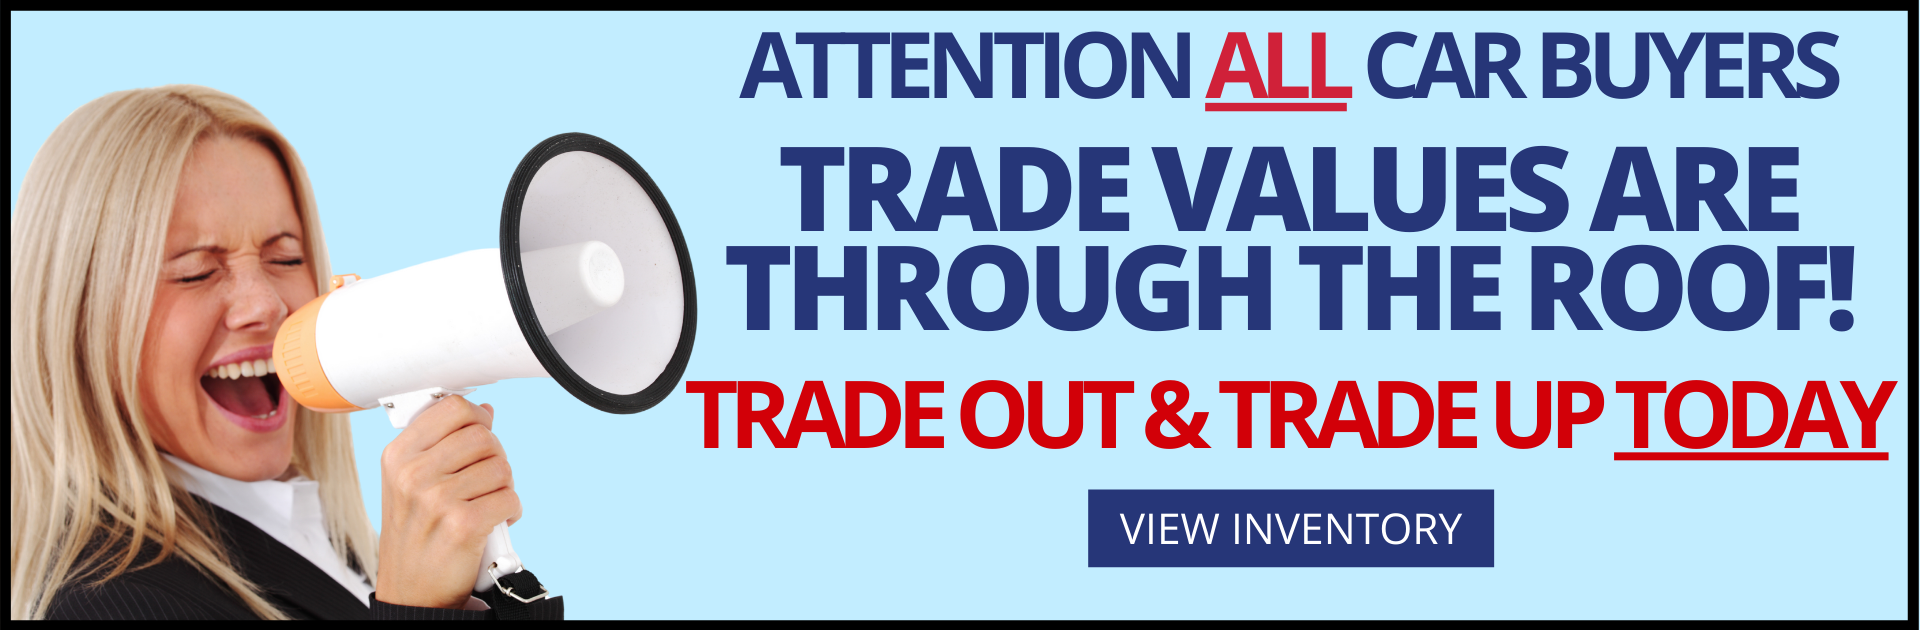 Trade Values Are Trhough The Roof At Bozeman Ford